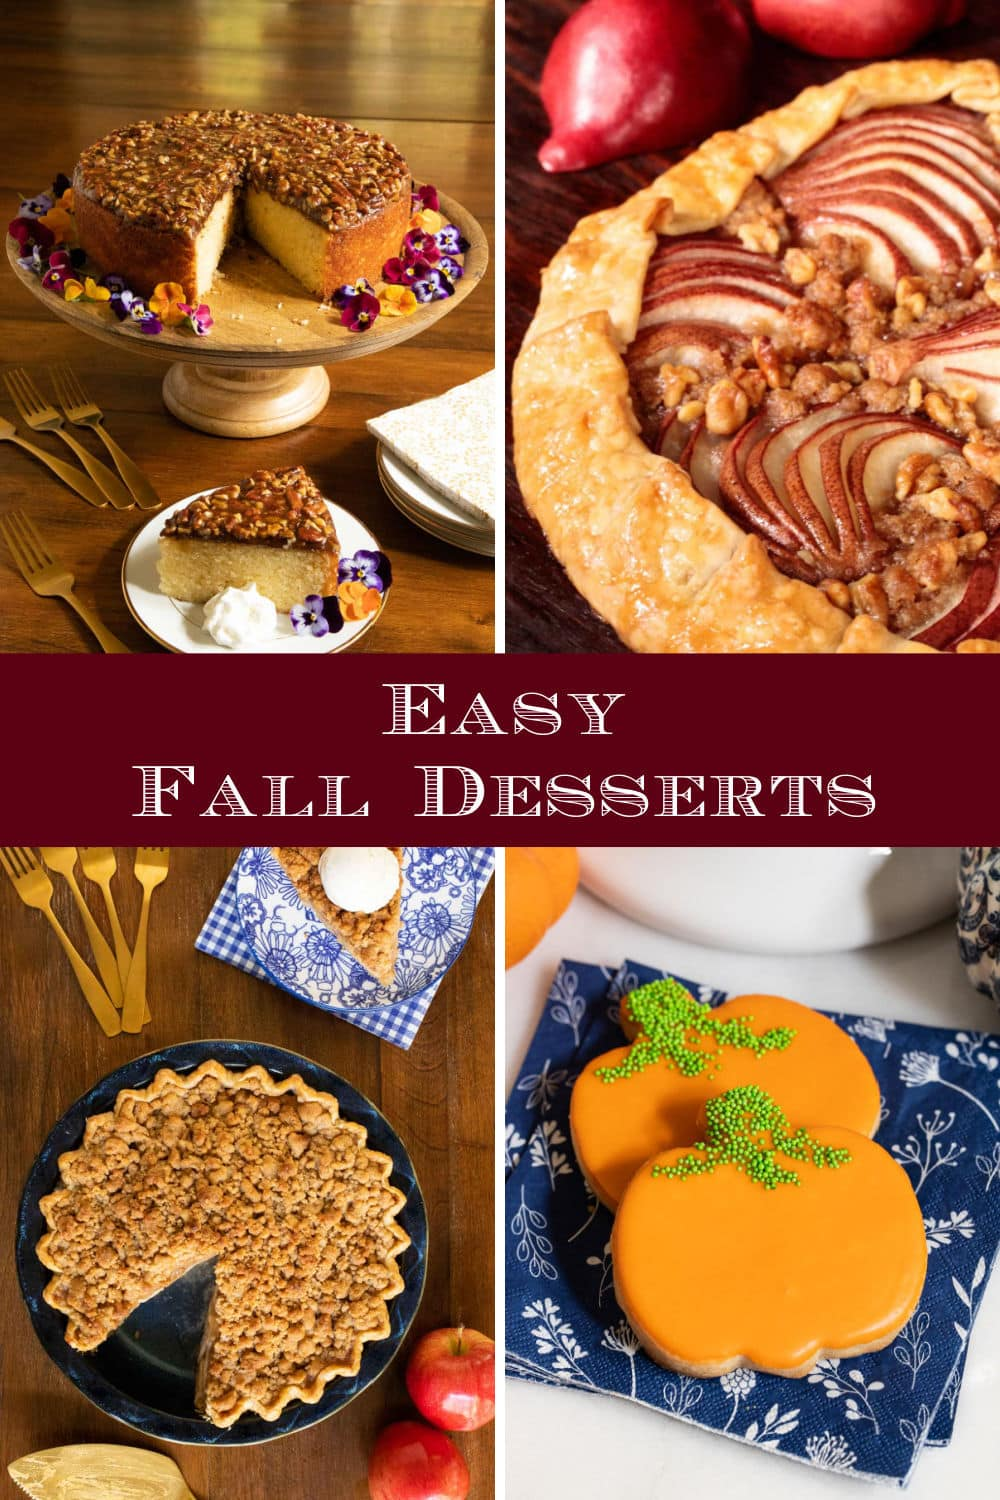 The Sweet Side of Fall! Delicious Autumn Desserts to Enjoy and Share